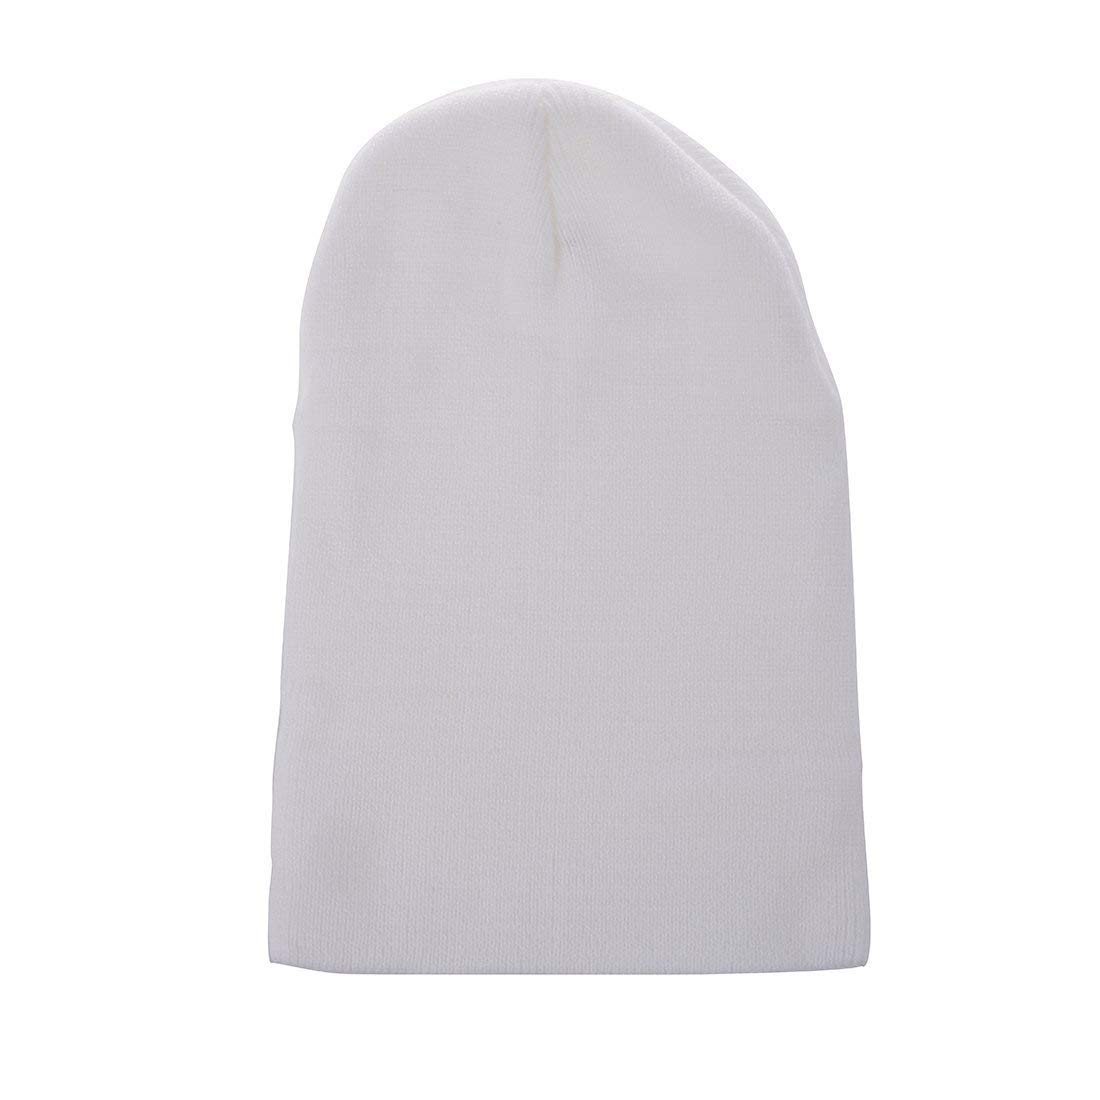 4fc7e5fbe6d88 Get Quotations · GQMART Winter Beanie Knit Ski Cap Hat Warm (White)